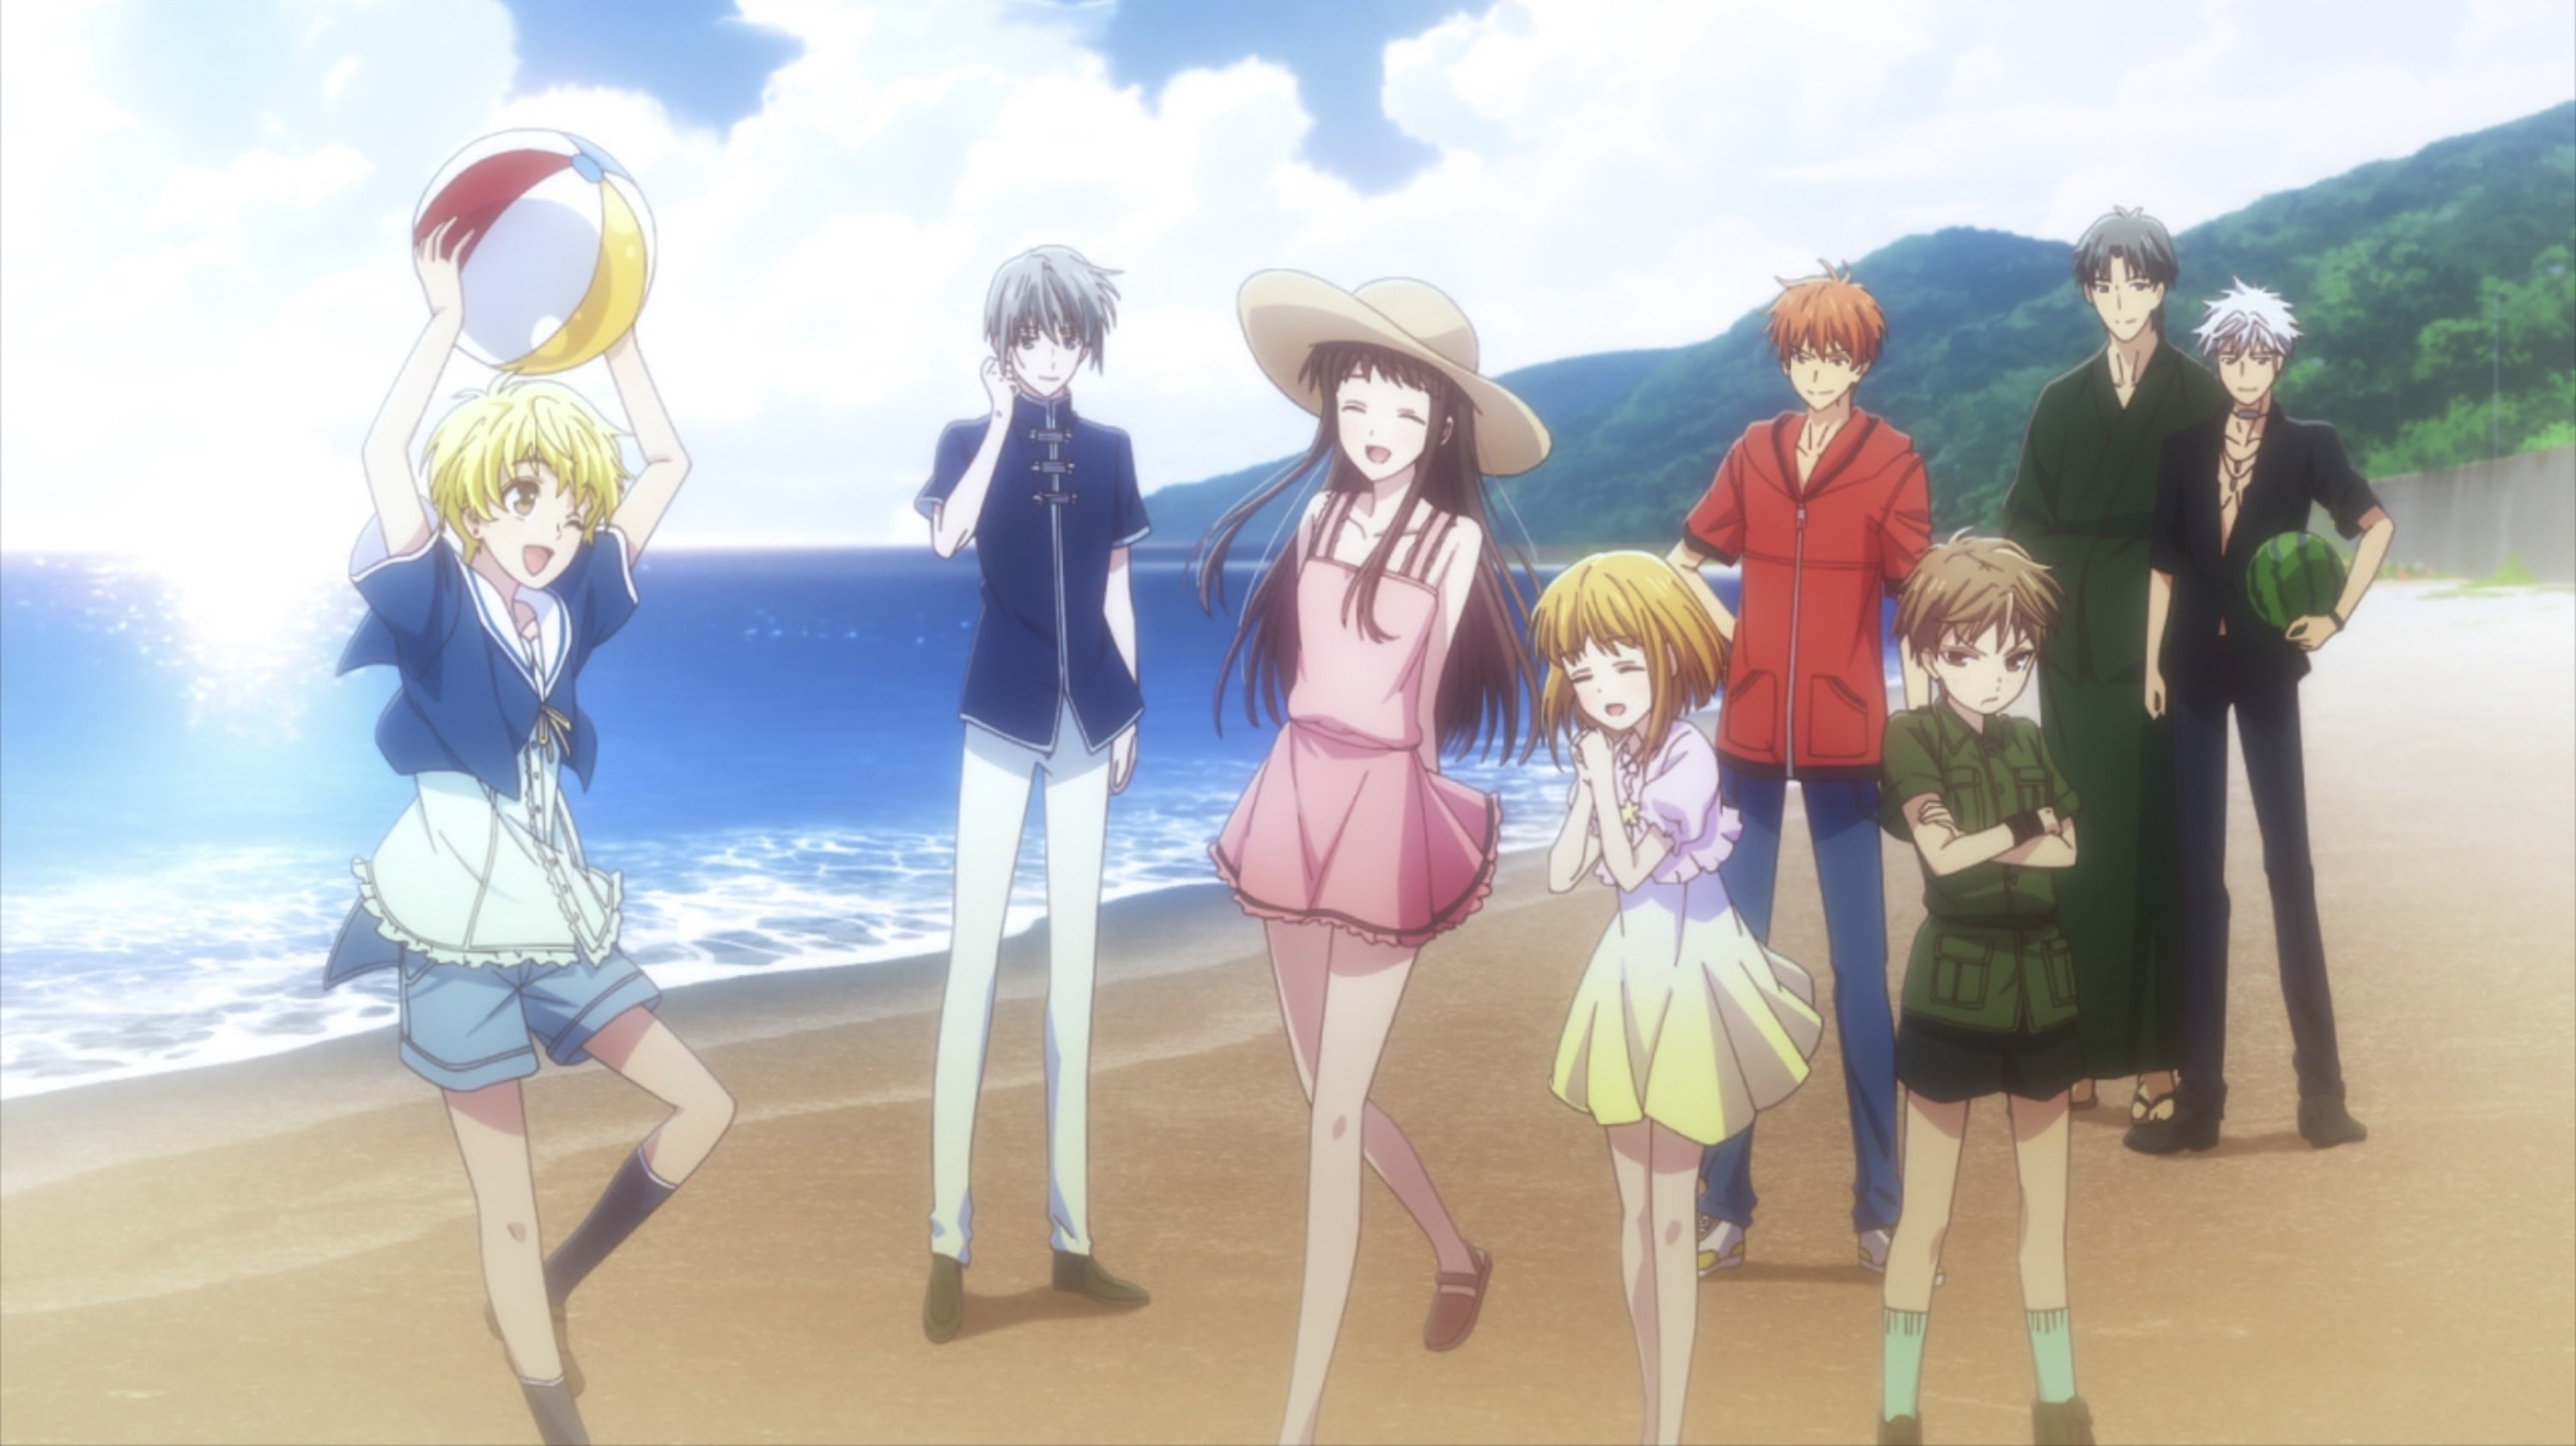 The Sohmas and Tohru strolling on the beach